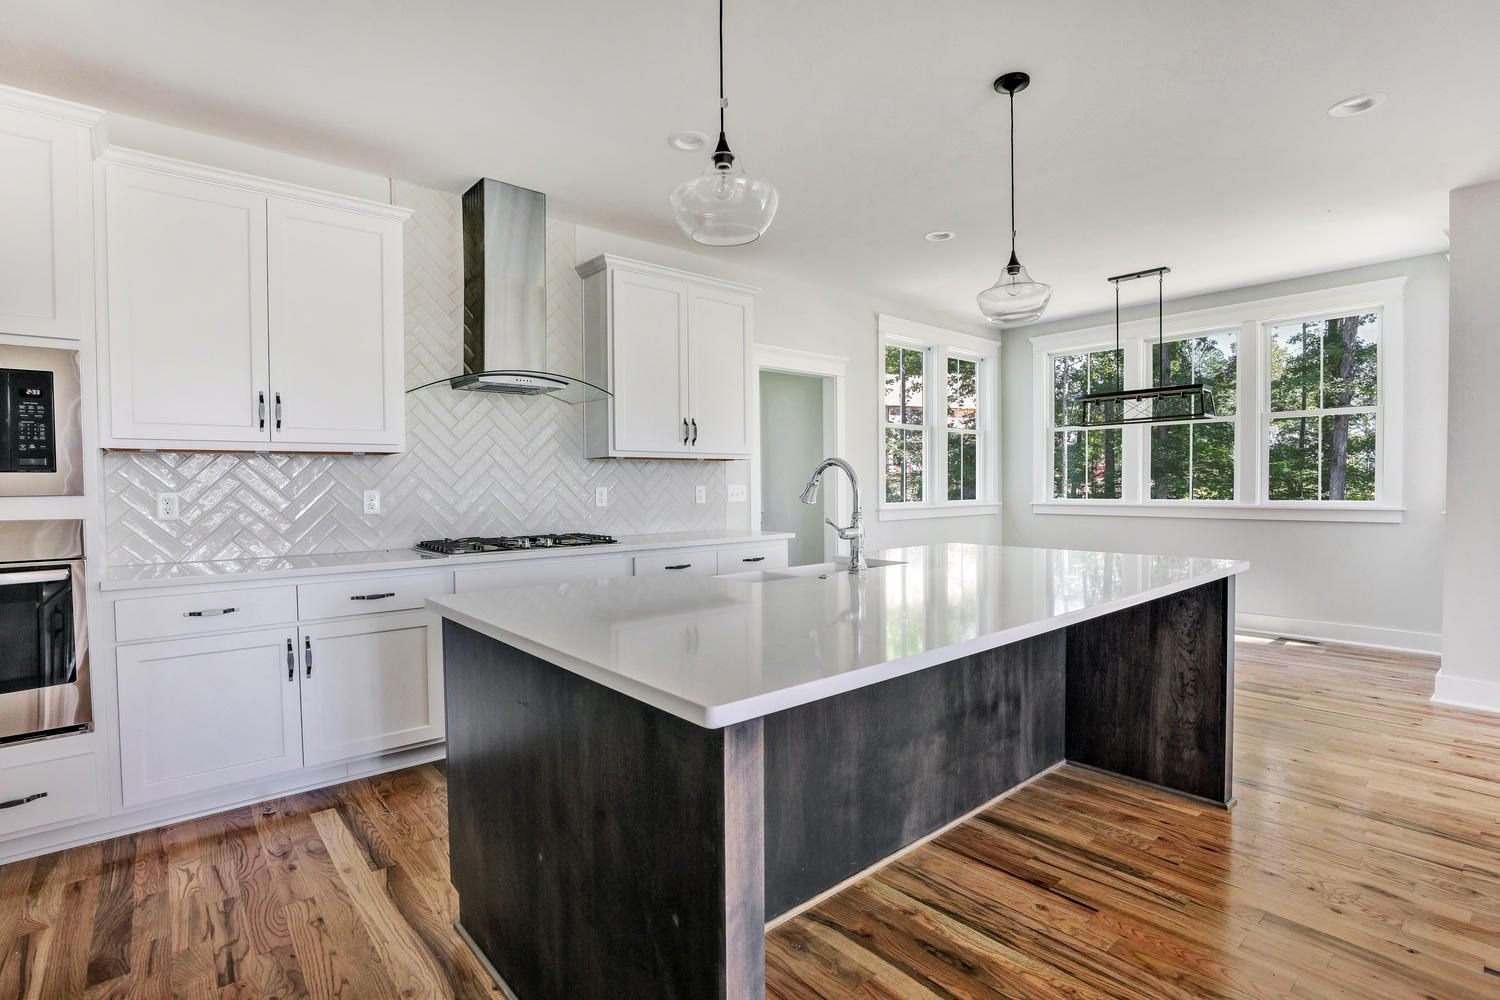 KITCHEN WITH WHITE SHAKER WITH BLACK HARDWARE